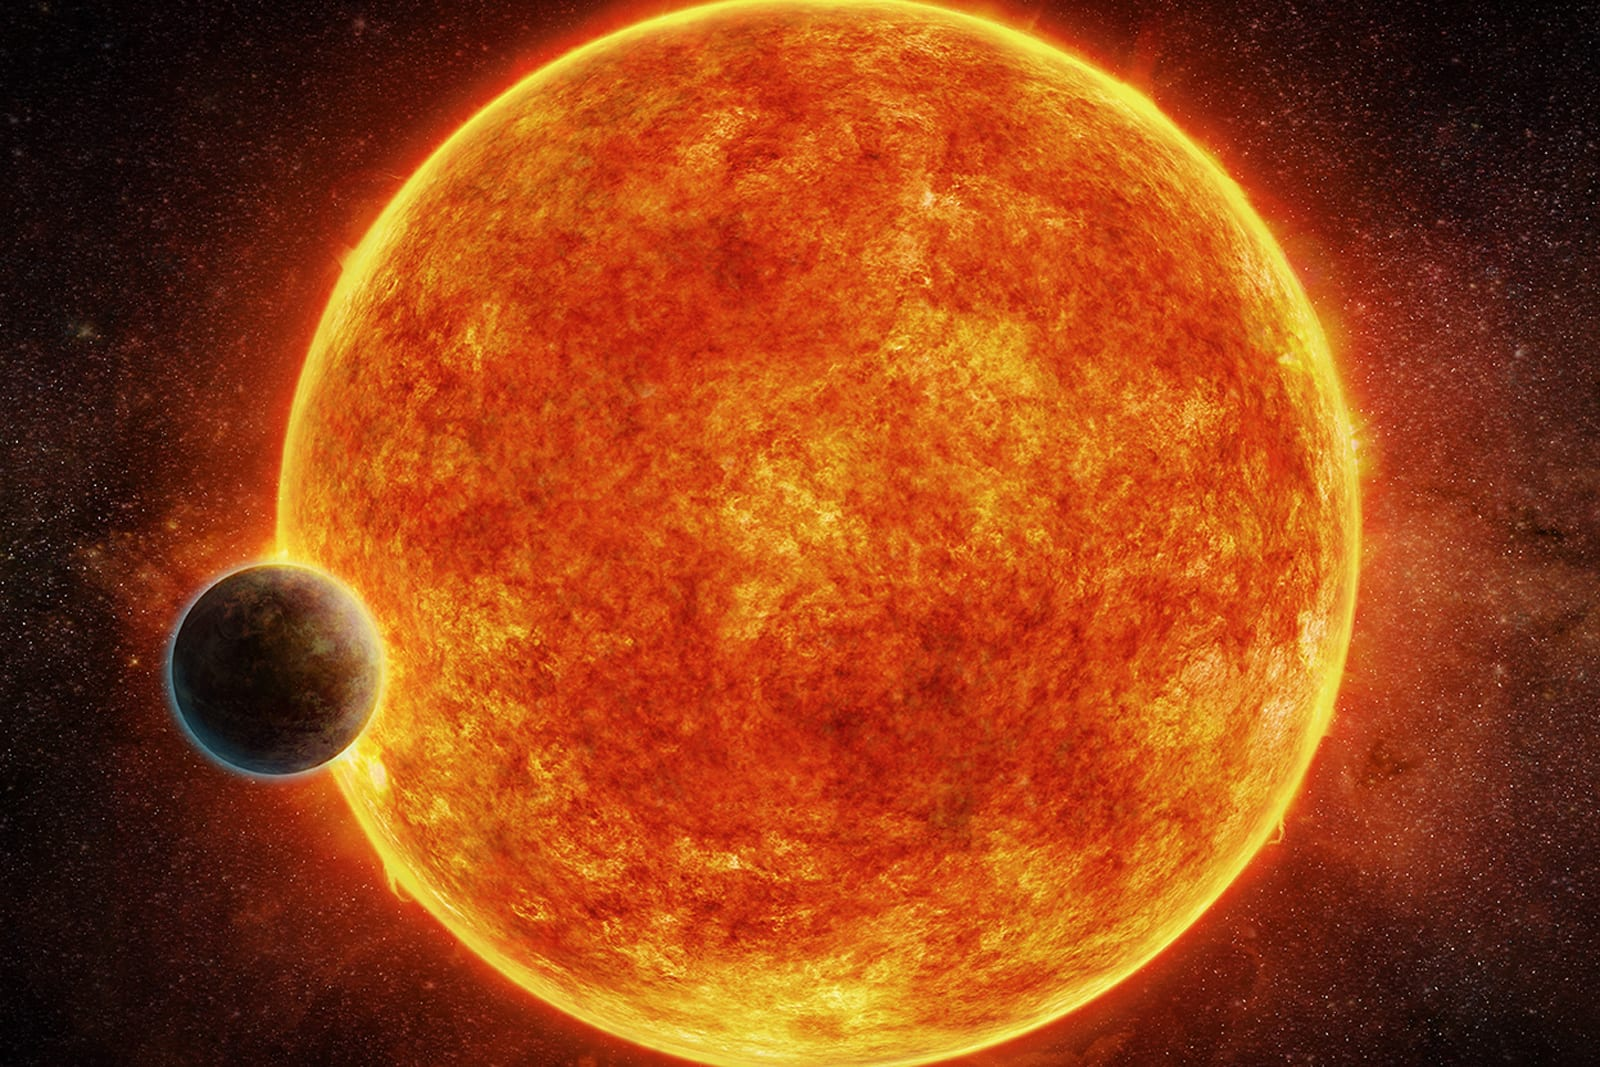 Nearby 'super-Earth' may be our best shot yet at finding alien life